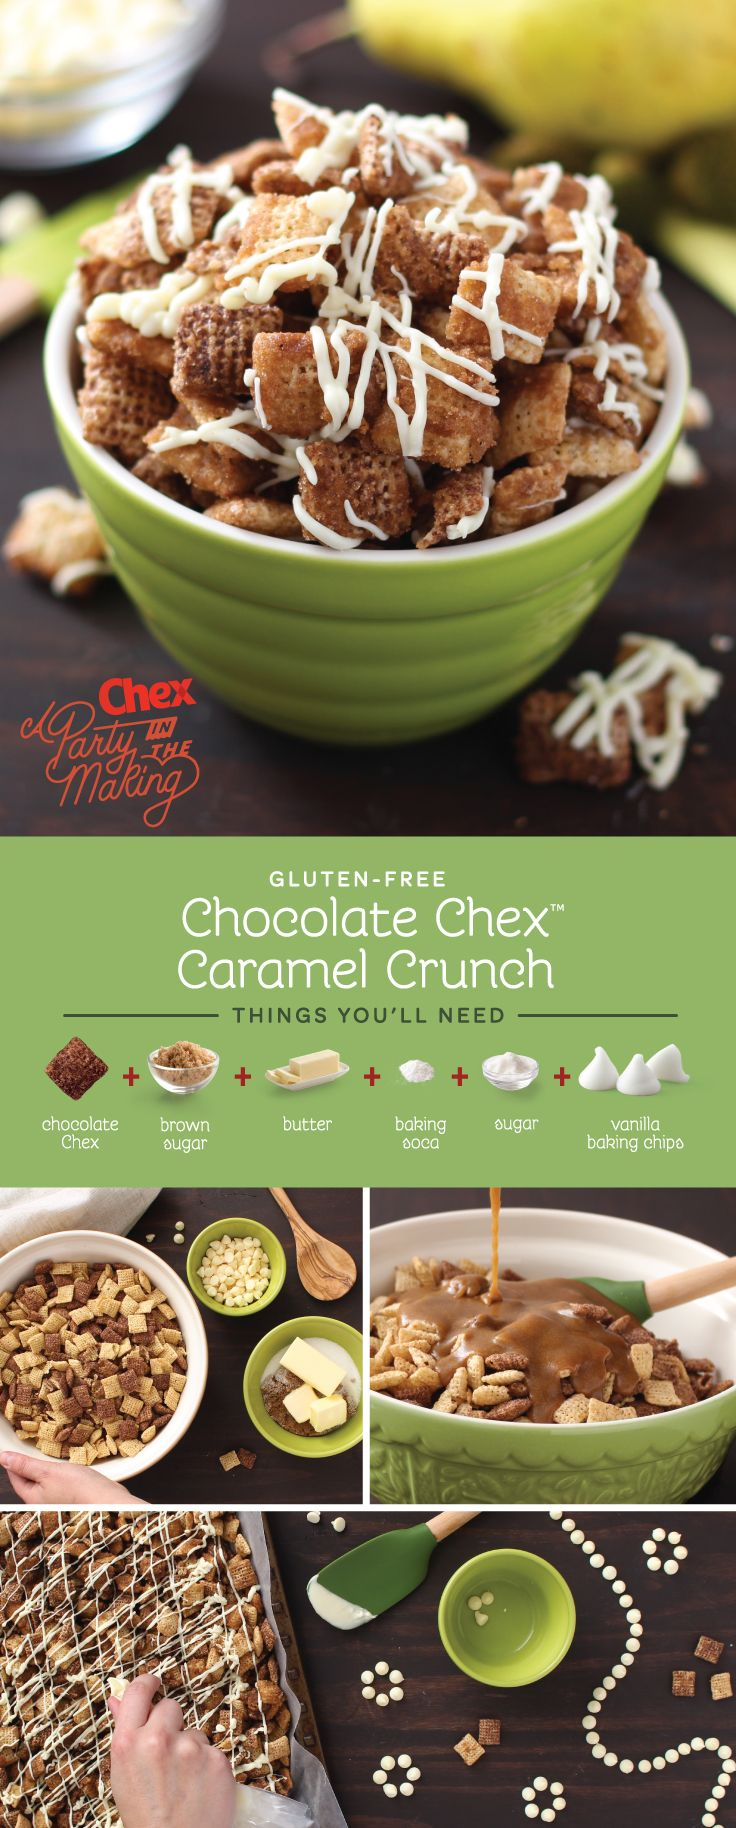 Little helpers will love topping this one off with white chocolate drizzle! Homemade Chocolate Caramel Crunch Chex Mix packs two of our favorite flavors into one easy to make treat that both kids and adults will love.